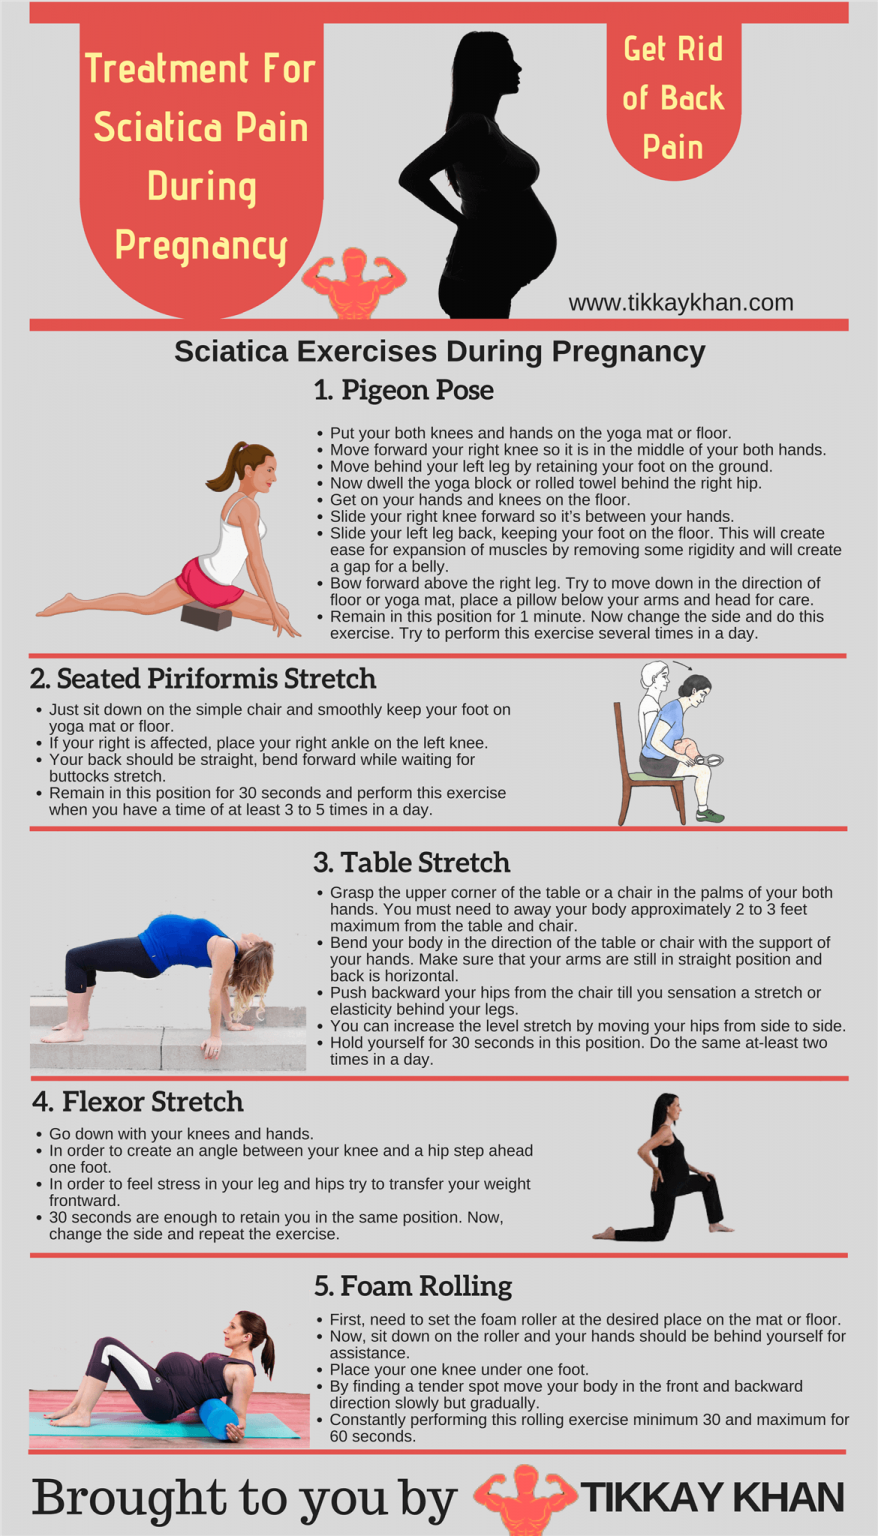 How To Help With Sciatic Nerve Pain While Pregnant